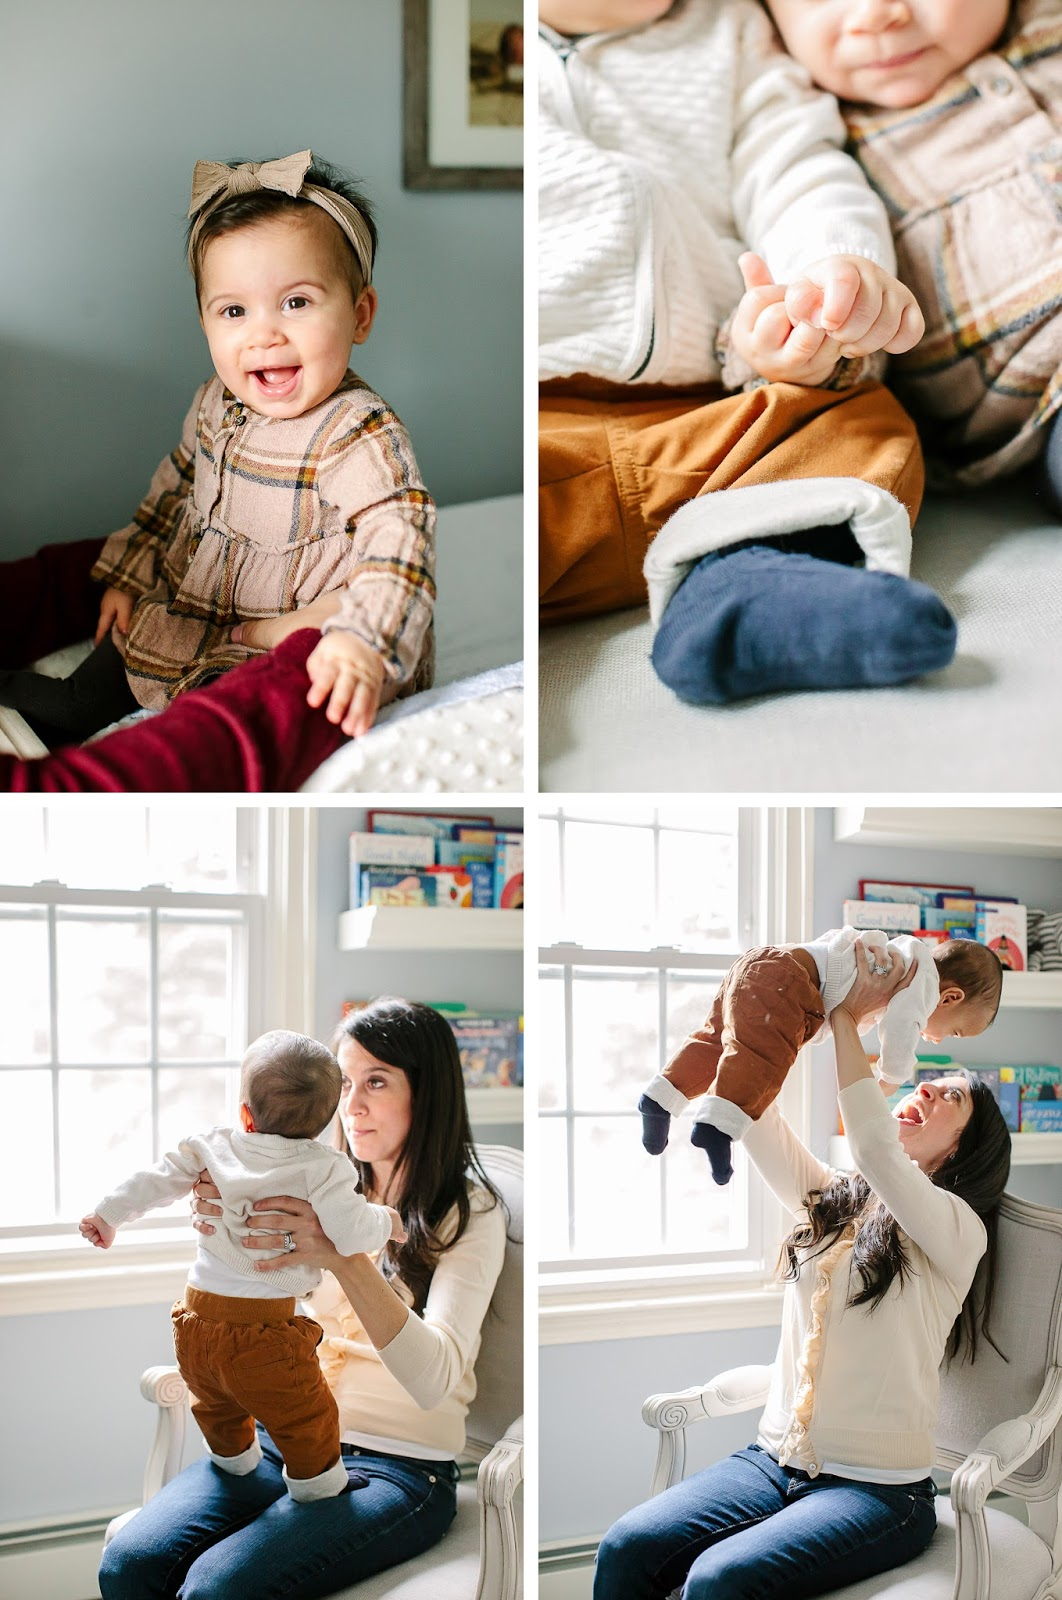 twin baby nursery session Mandy Mayberry Photography, In home family photography Boston Rhode Island Massachusetts